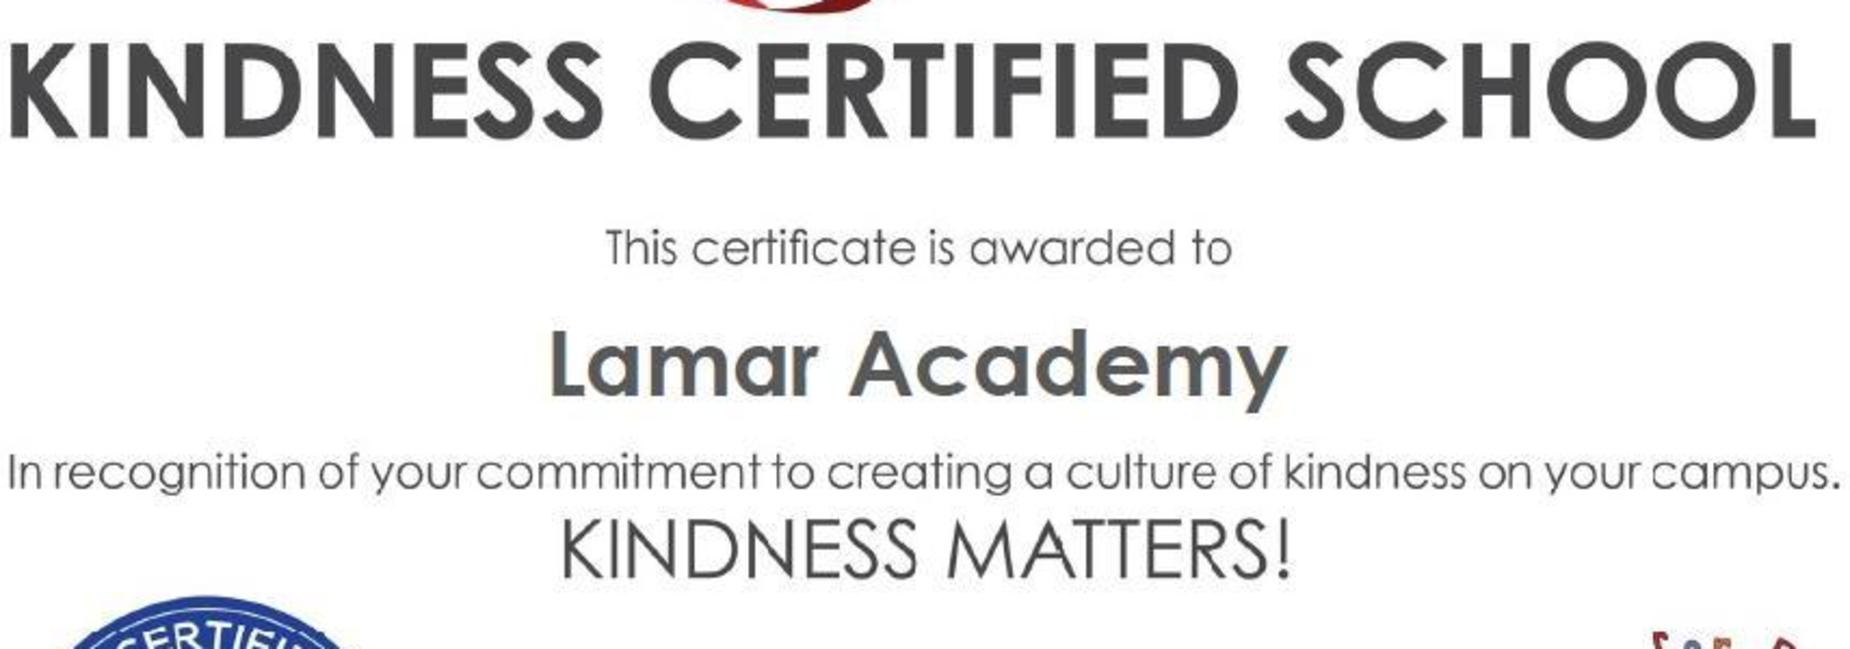 Kindness School certificate